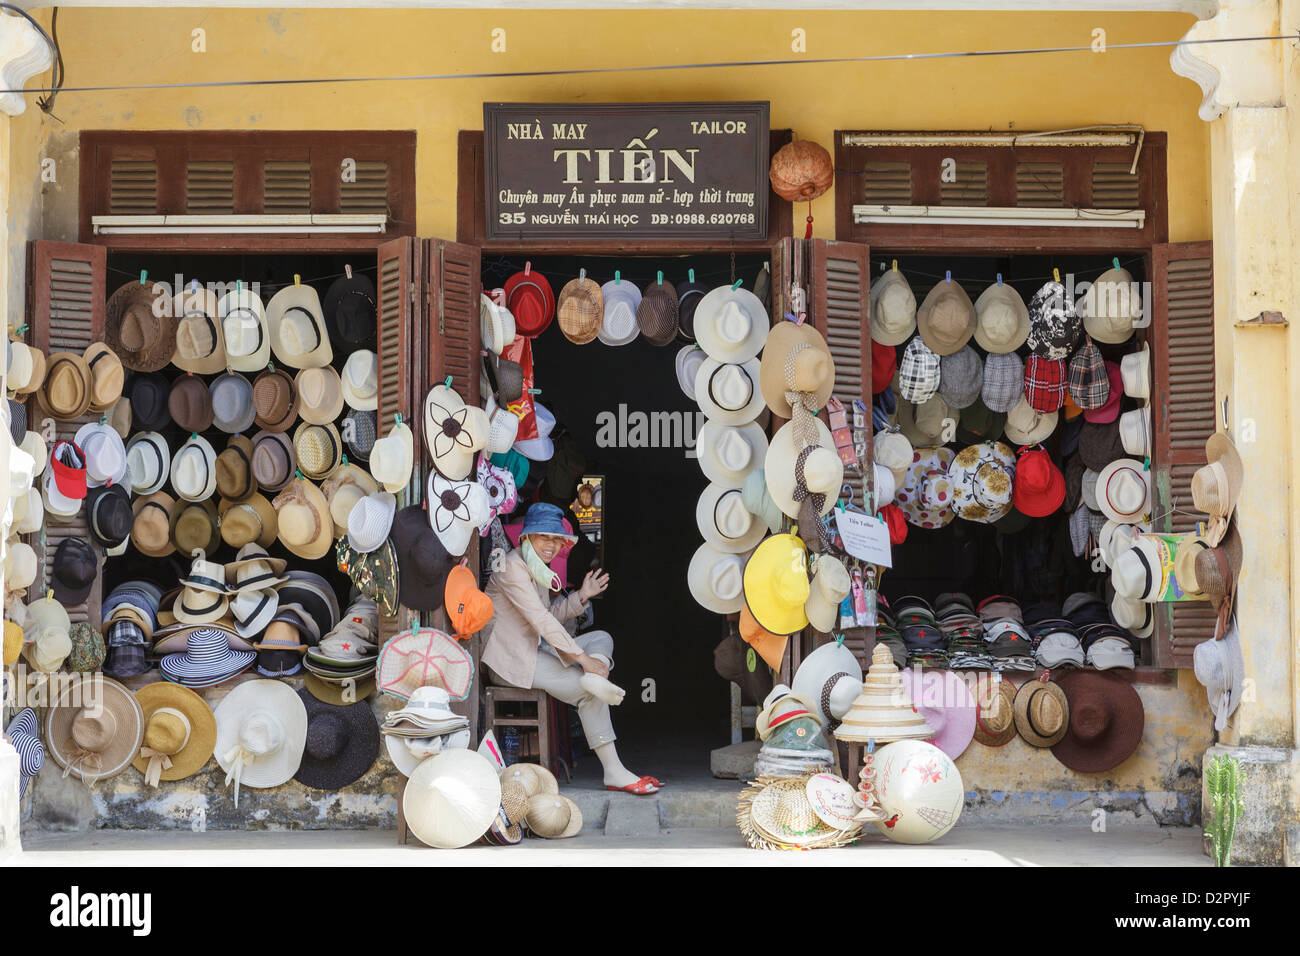 A hat seller's shop front, Hoi An Old Town, Hoi An, Vietnam, Indochina, Southeast Asia, Asia - Stock Image